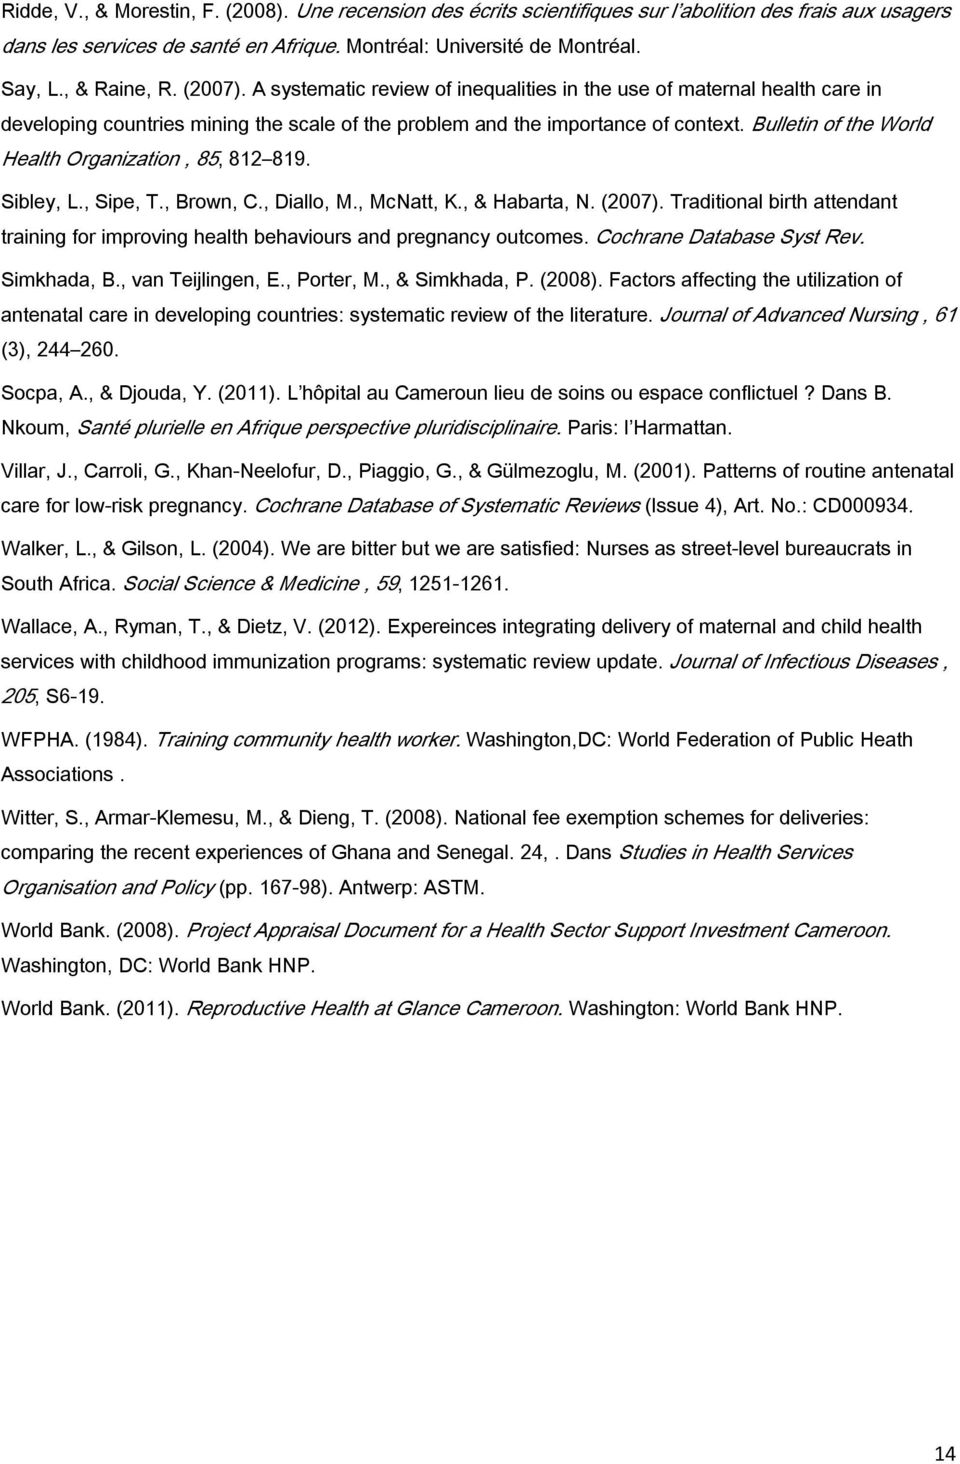 Bulletin of the World Health Organization, 85, 812 819. Sibley, L., Sipe, T., Brown, C., Diallo, M., McNatt, K., & Habarta, N. (2007).